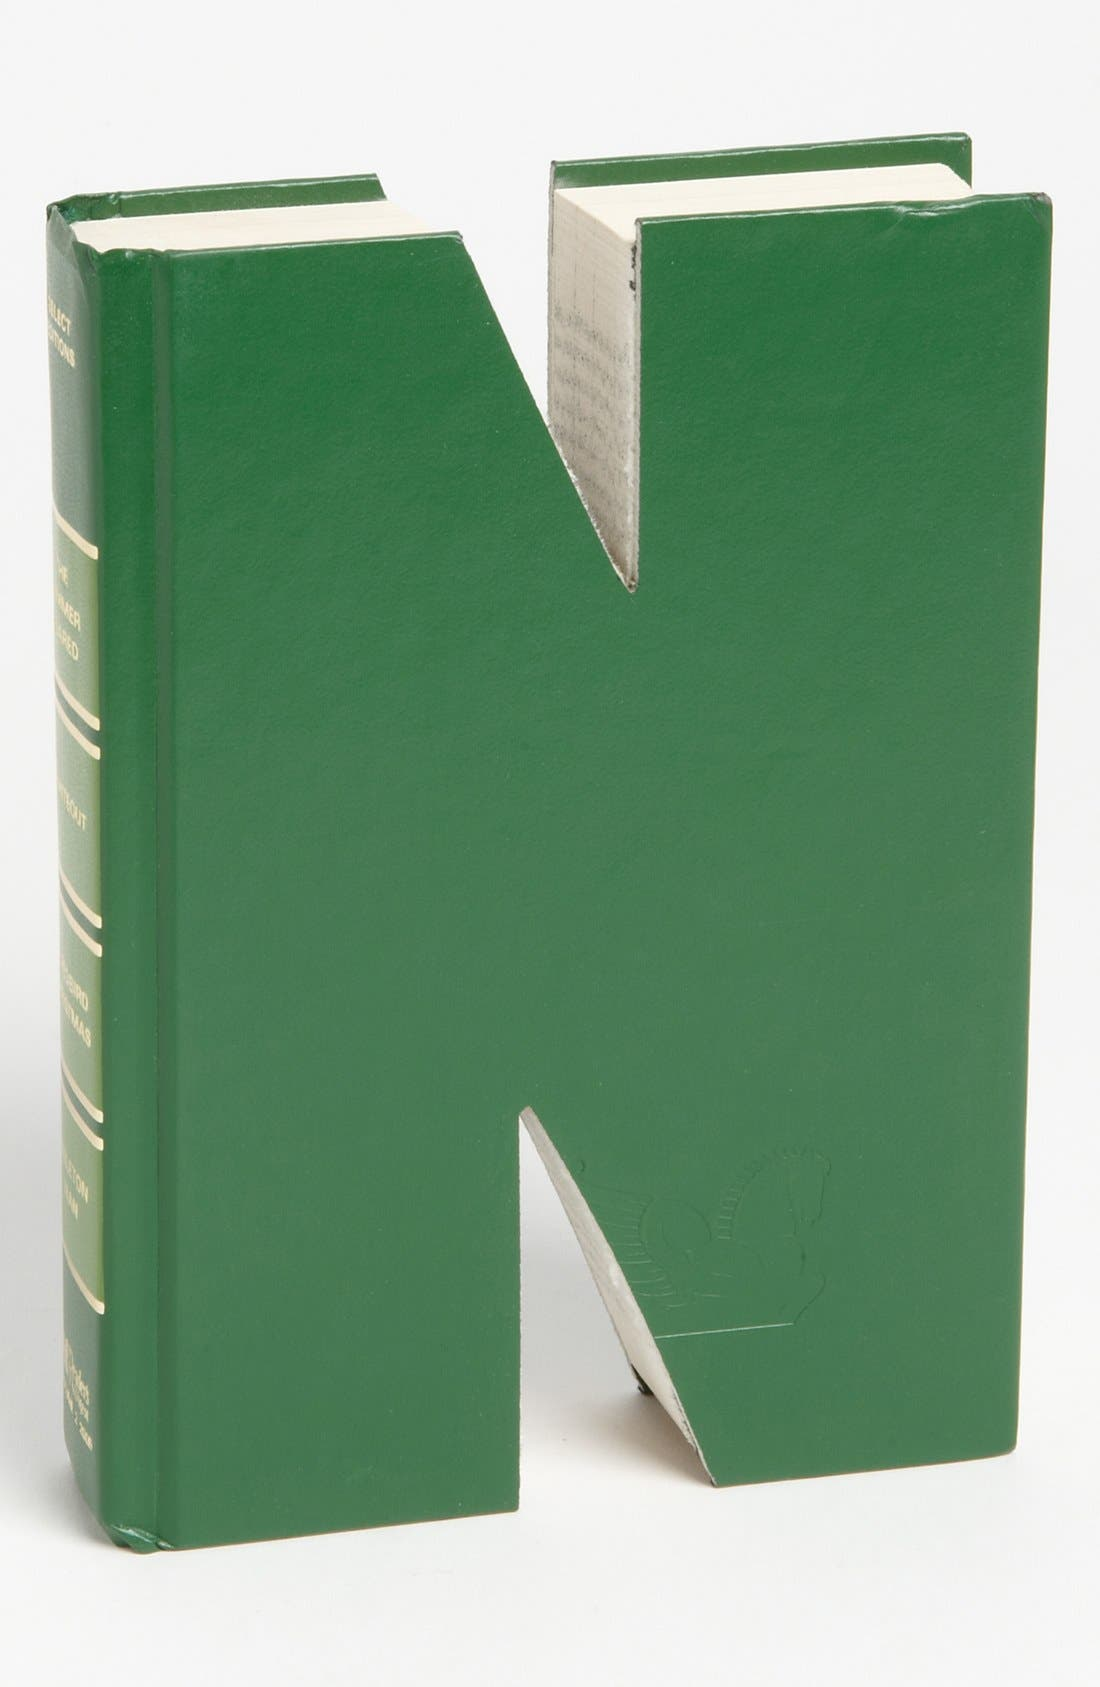 'One of a Kind Letter' Hand-Carved Recycled Book Shelf Art,                             Main thumbnail 14, color,